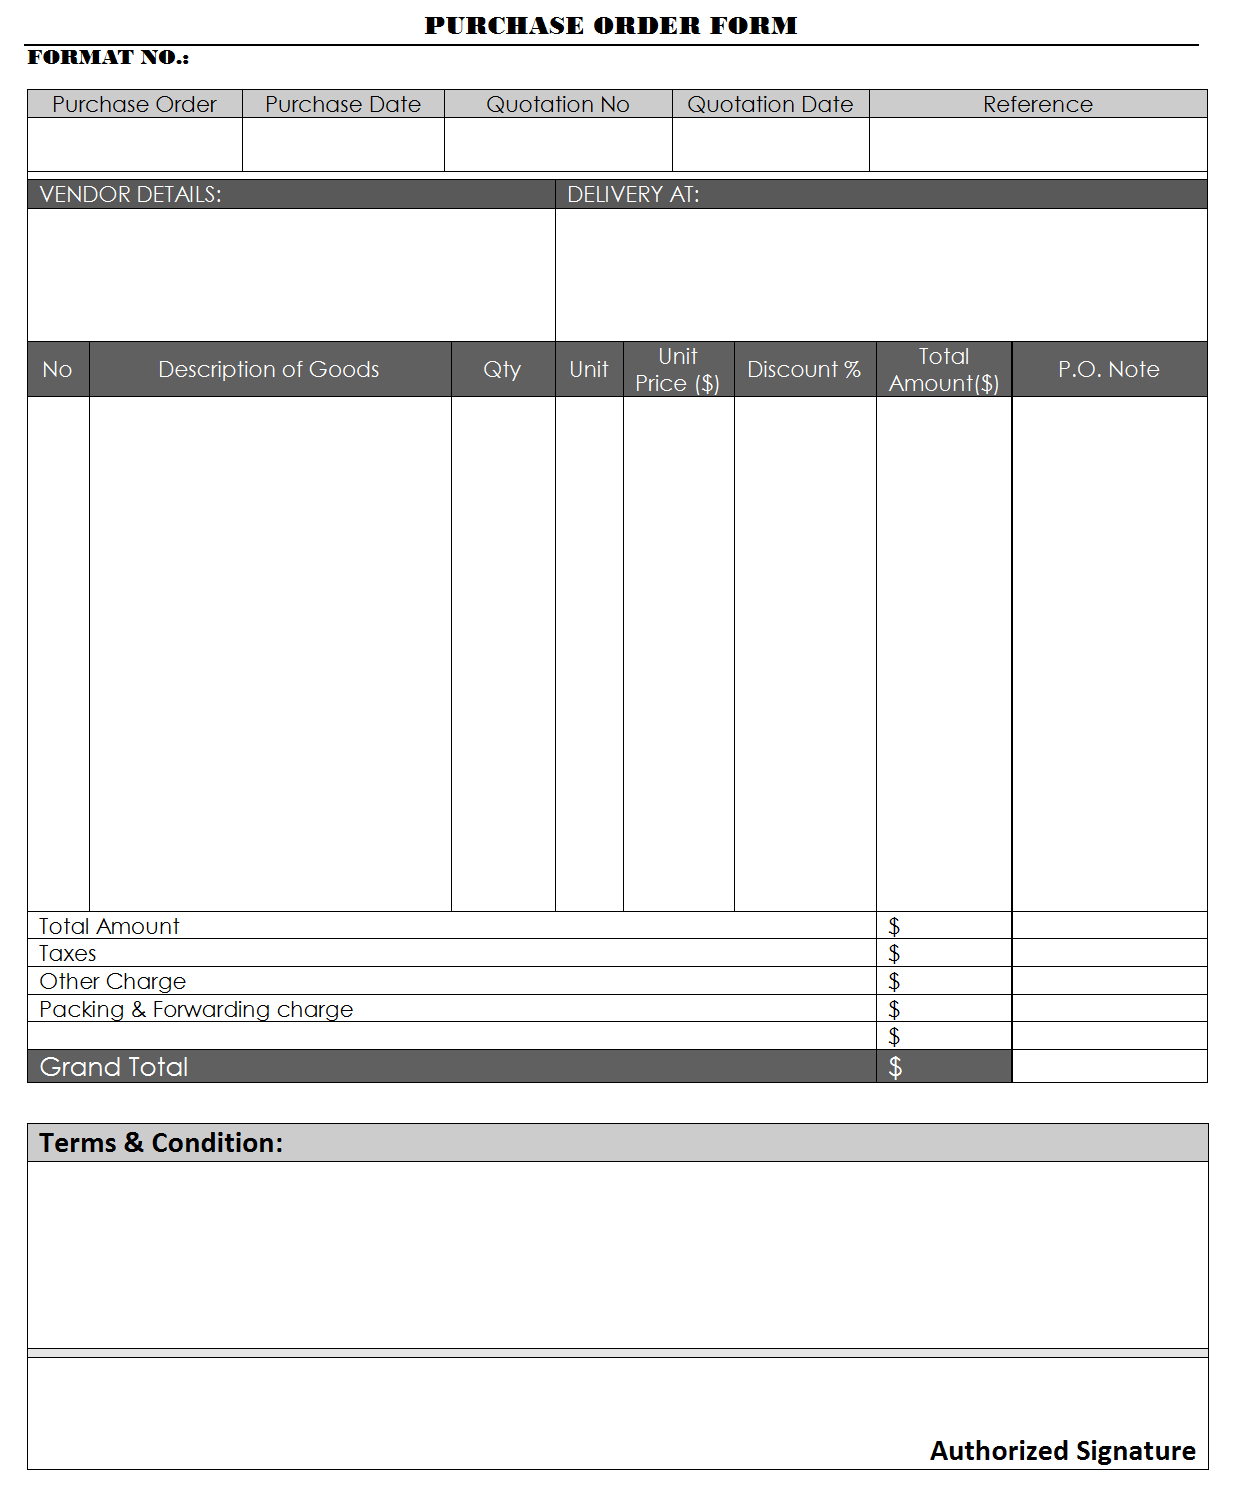 Purchase Order Form  Format Of A Purchase Order